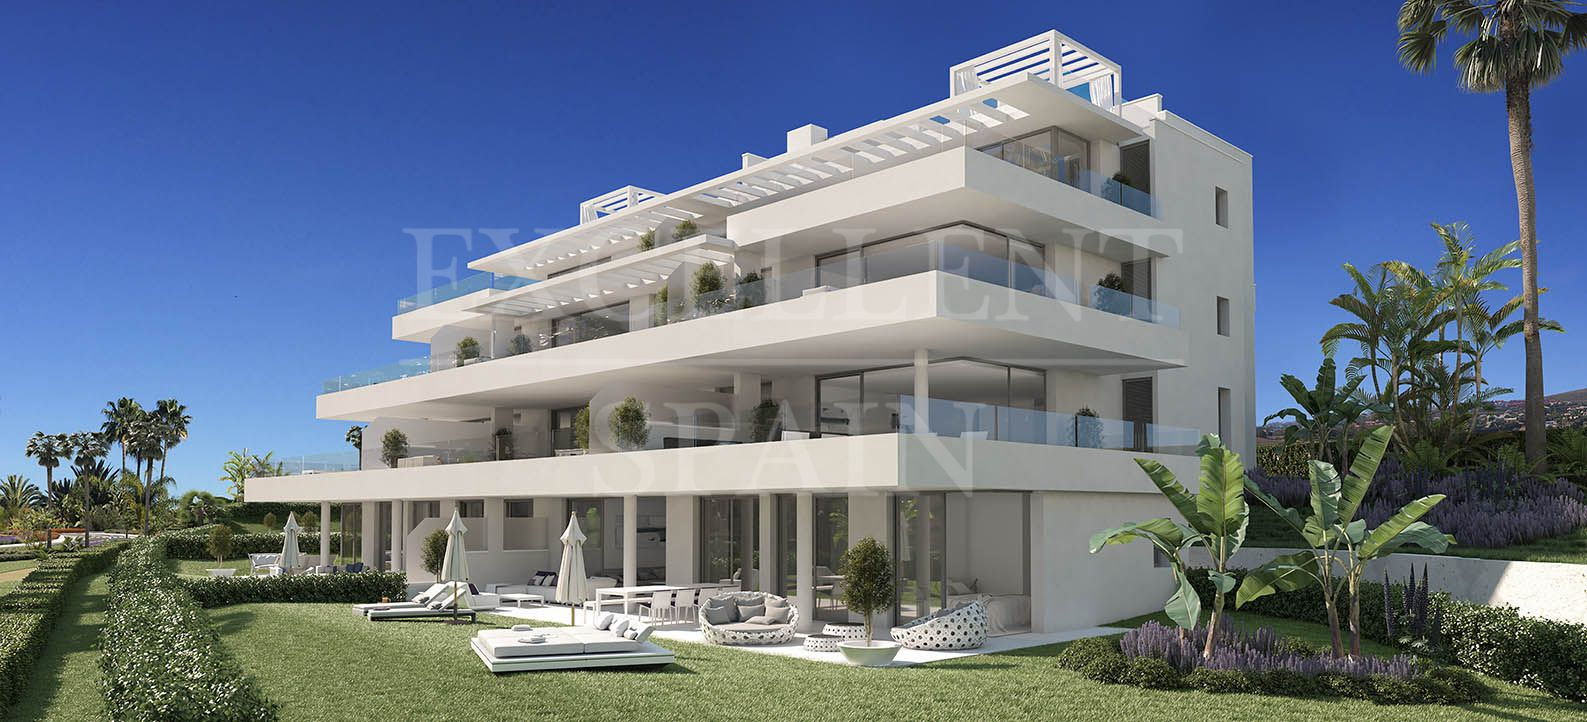 Cataleya, Estepona - Luxury, contemporary apartments and penthouses Atalaya, New Golden Mile, Costa del Sol